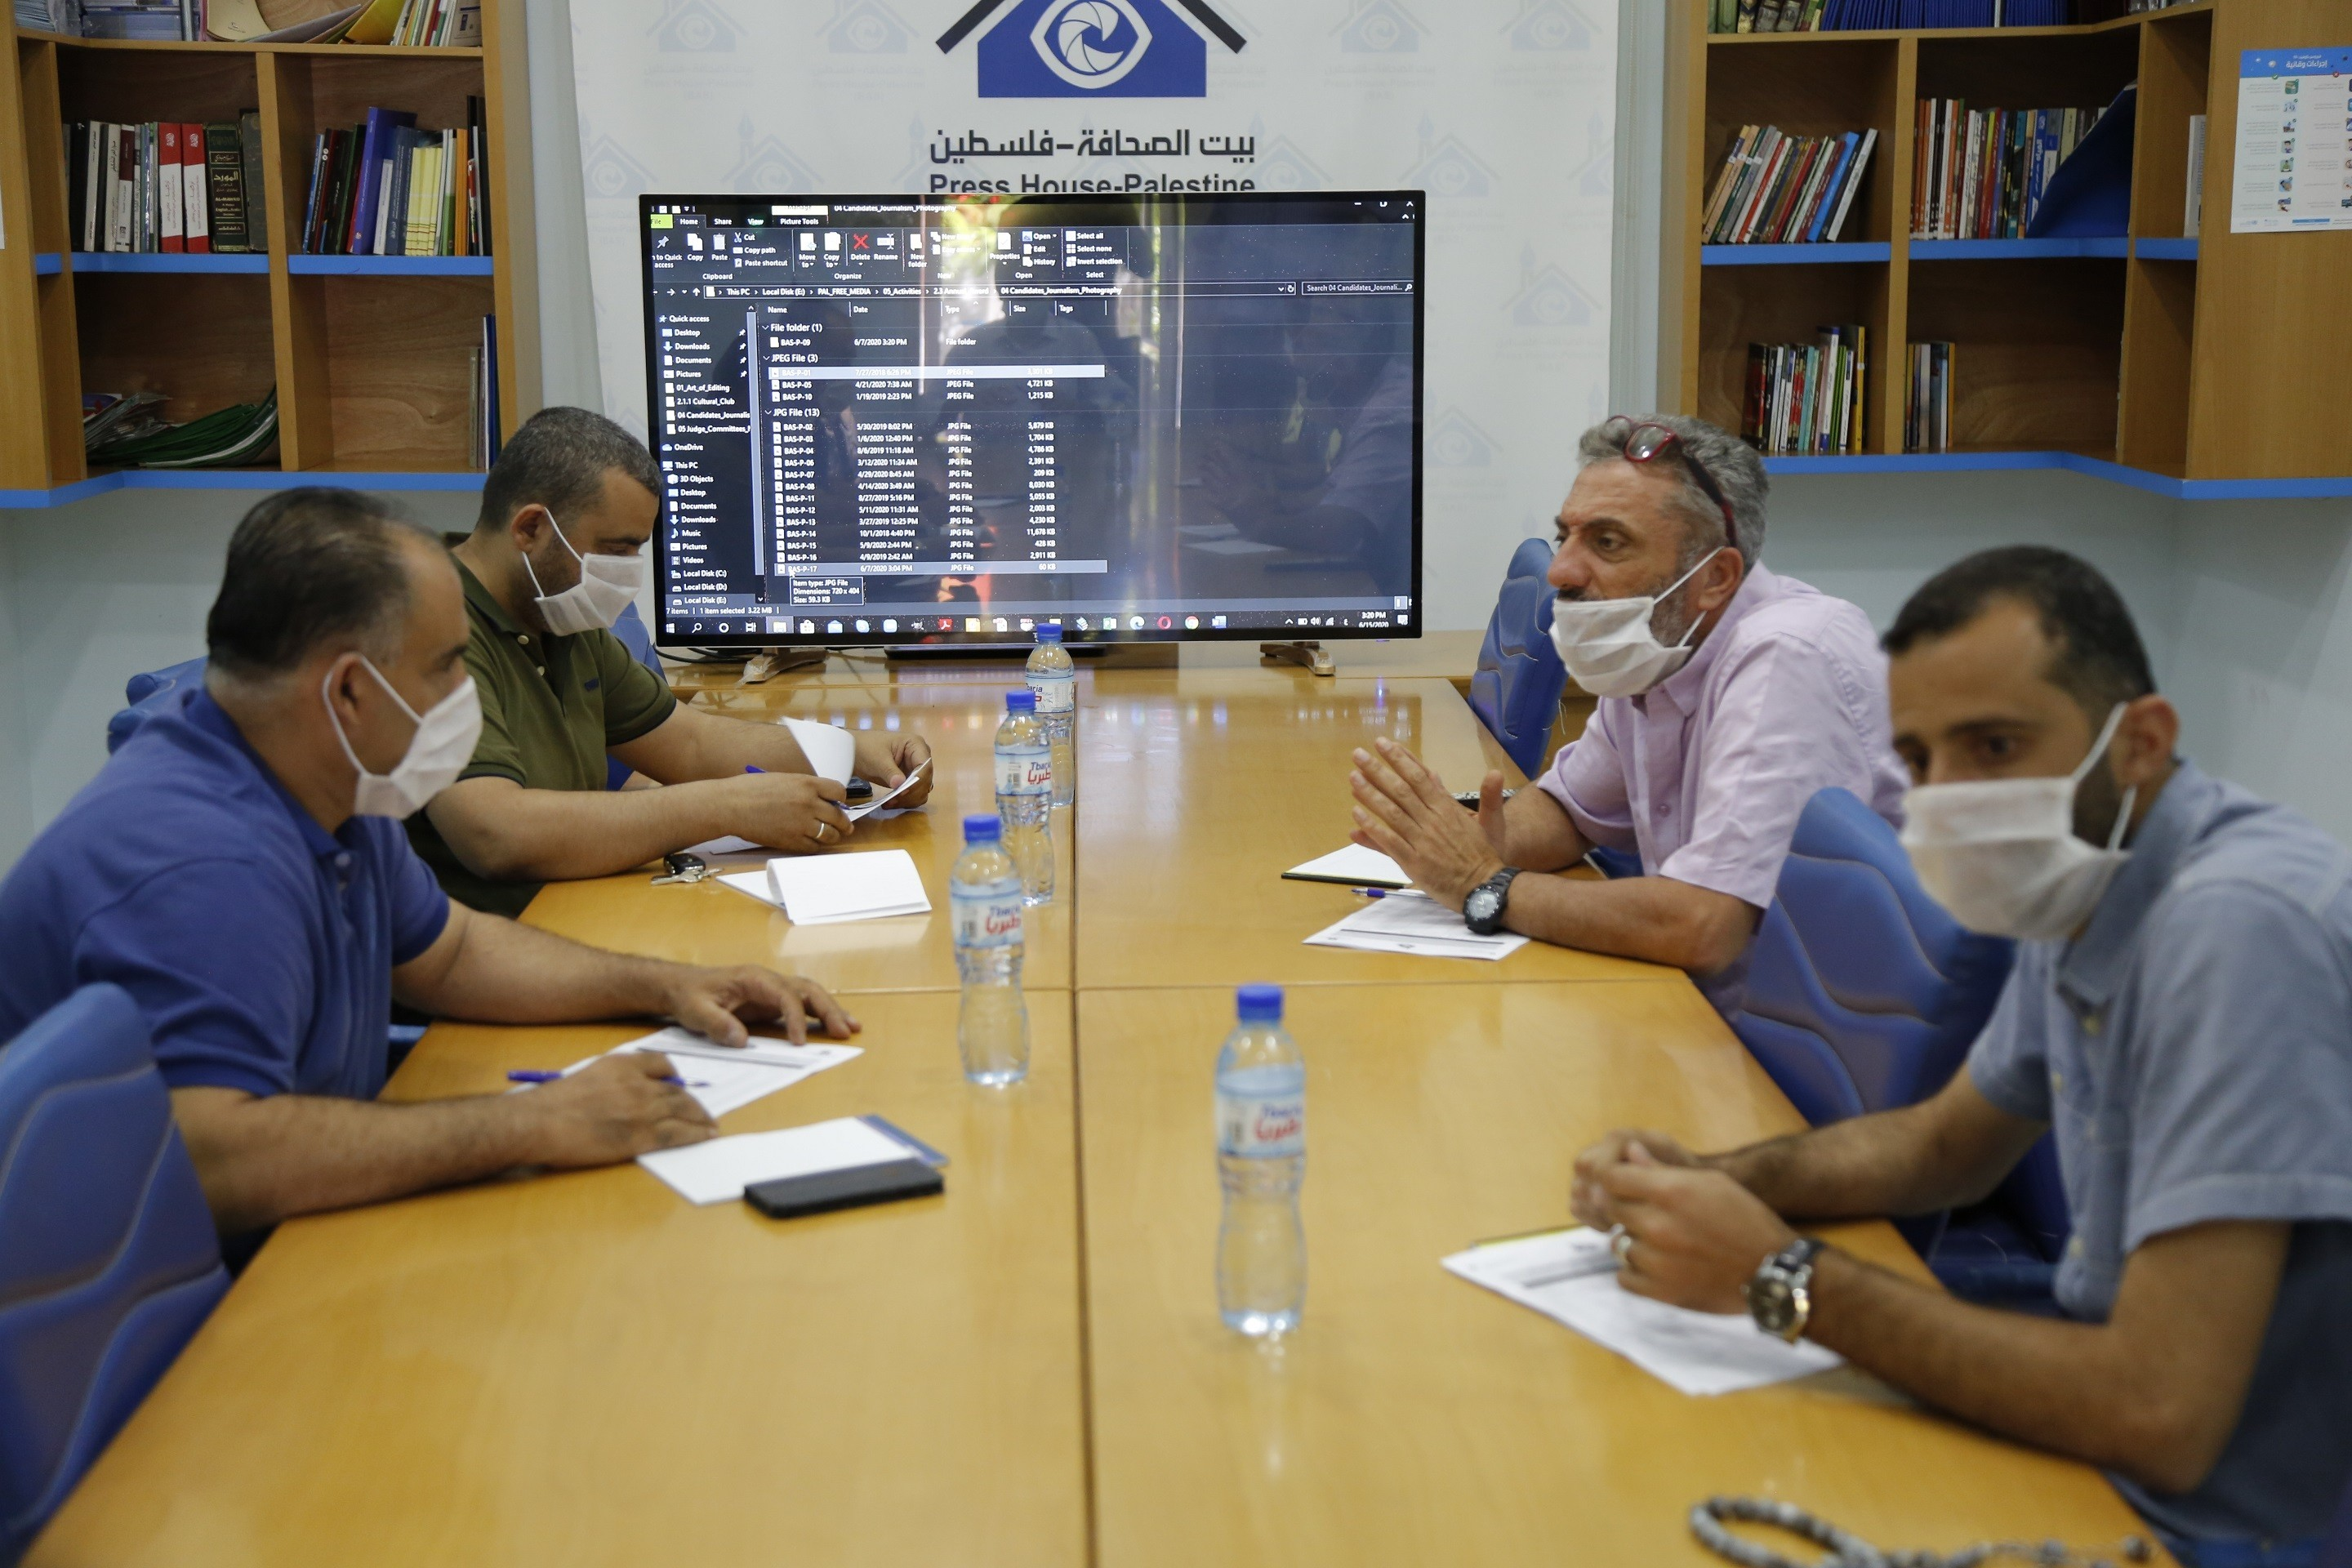 Evaluation Committee of Journalism Photo Ended The Selection of Winning Photos for Press House Annual Award 2020